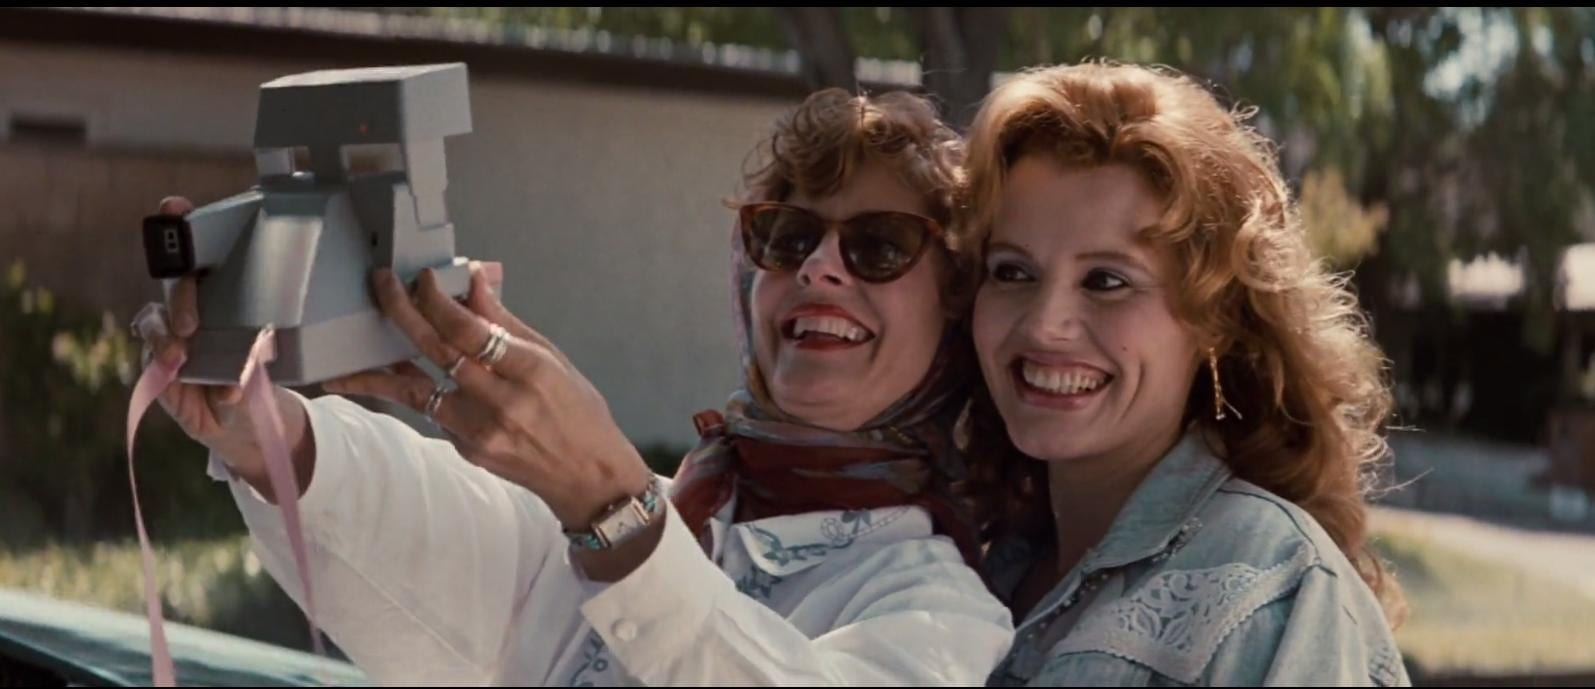 thelma and louise essay Music and movies essays: thelma and louise thelma and louise this essay thelma and louise and other 63,000+ term papers, college essay examples and free essays are available now on reviewessayscom autor: reviewessays • november 29, 2010 • essay • 581 words (3 pages) • 566 views.